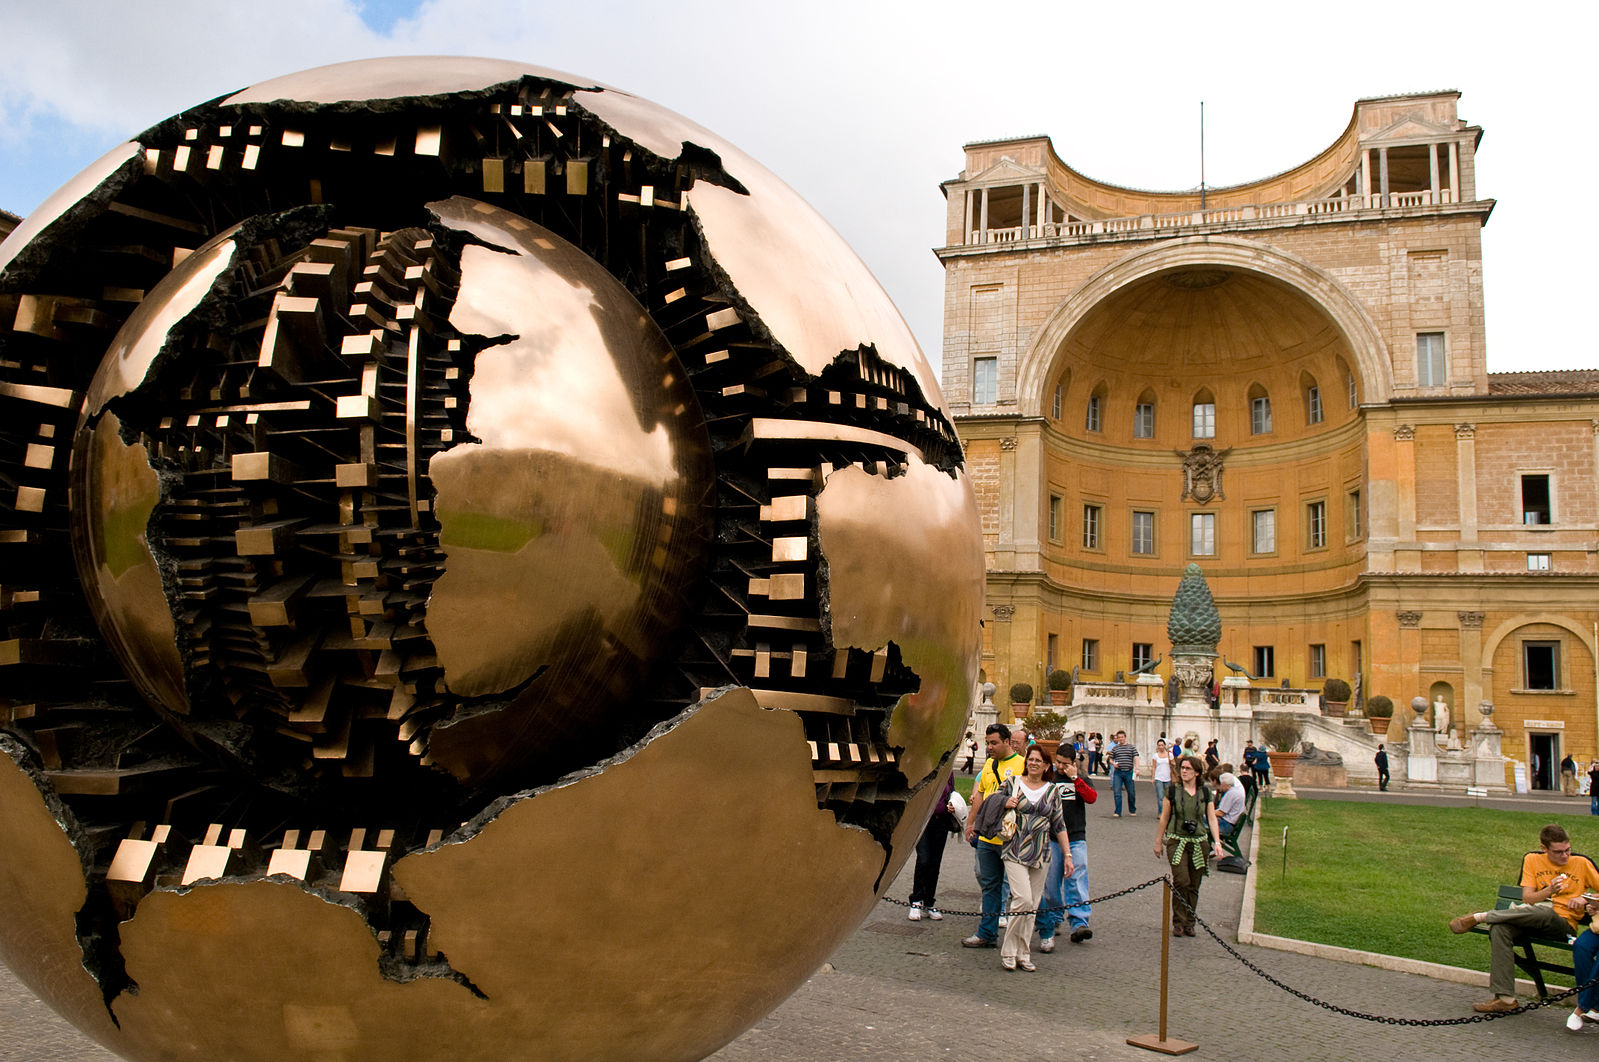 Pomodoro Sphere at the Vatican